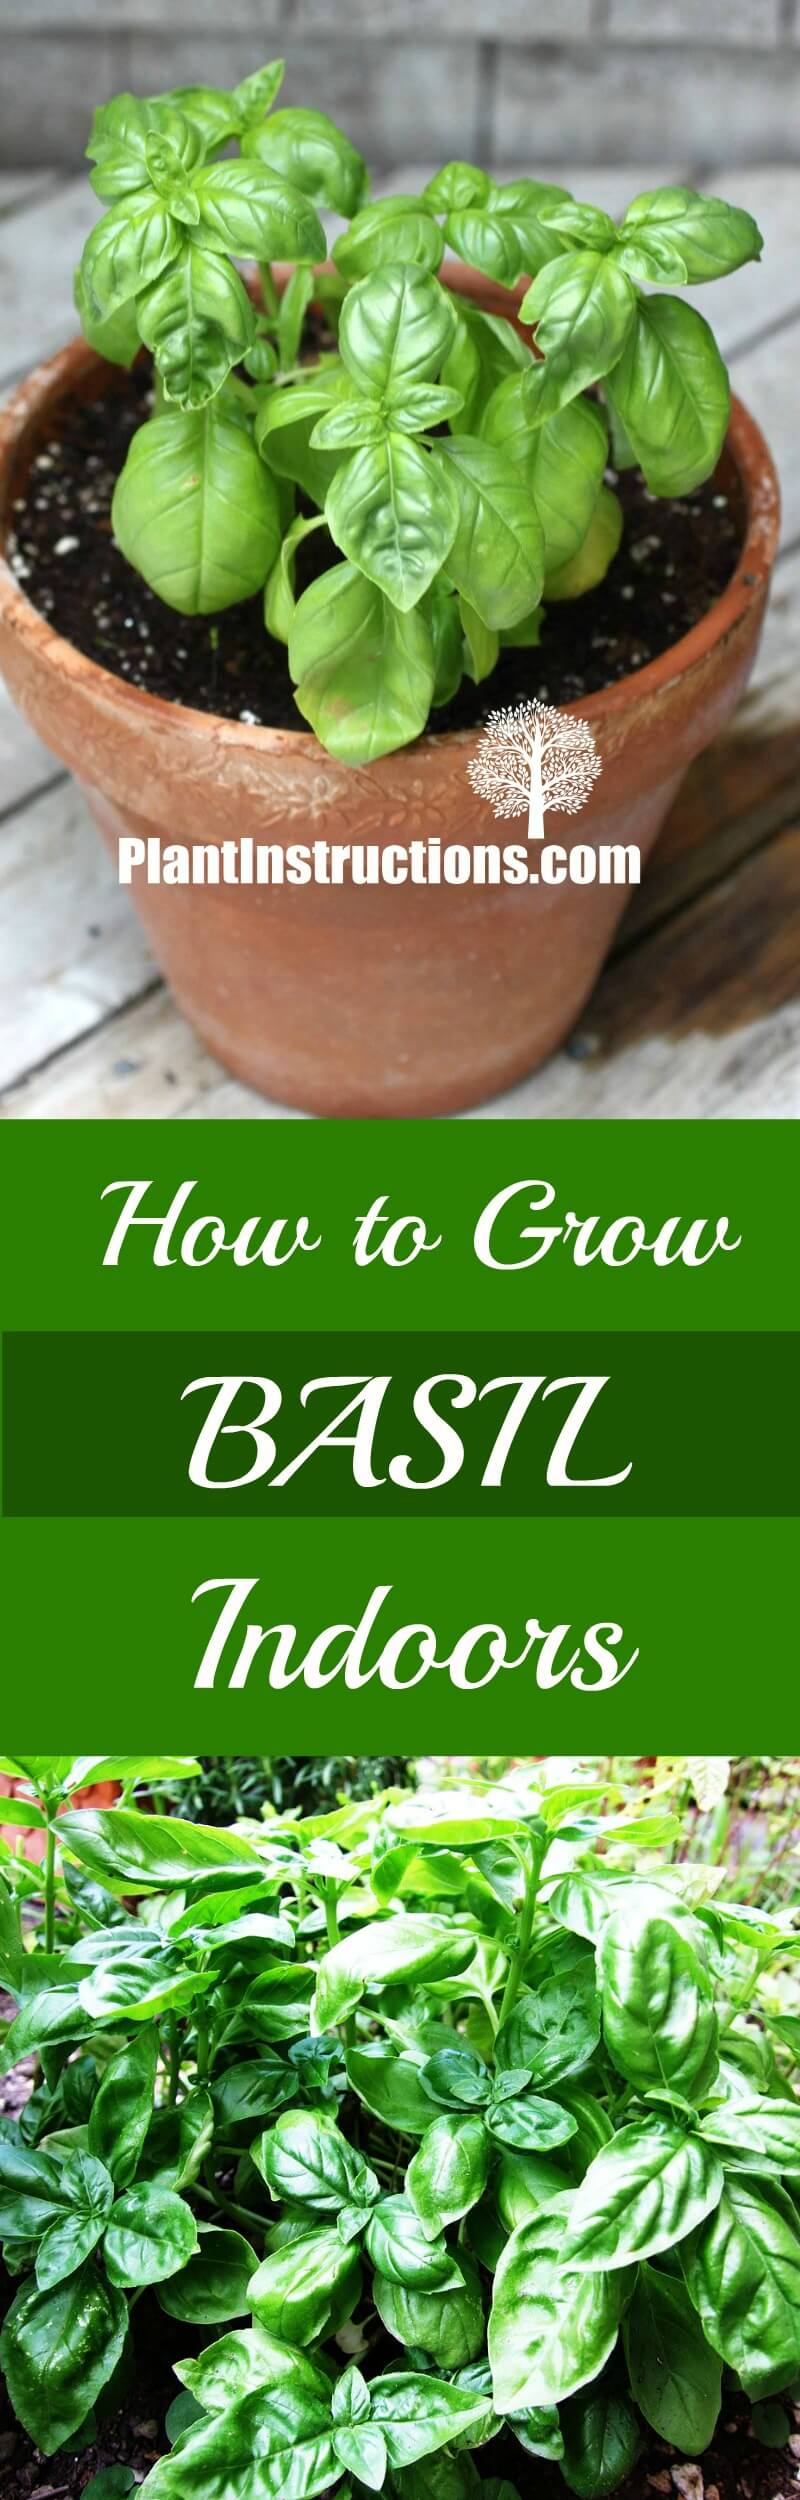 grow basil indoors